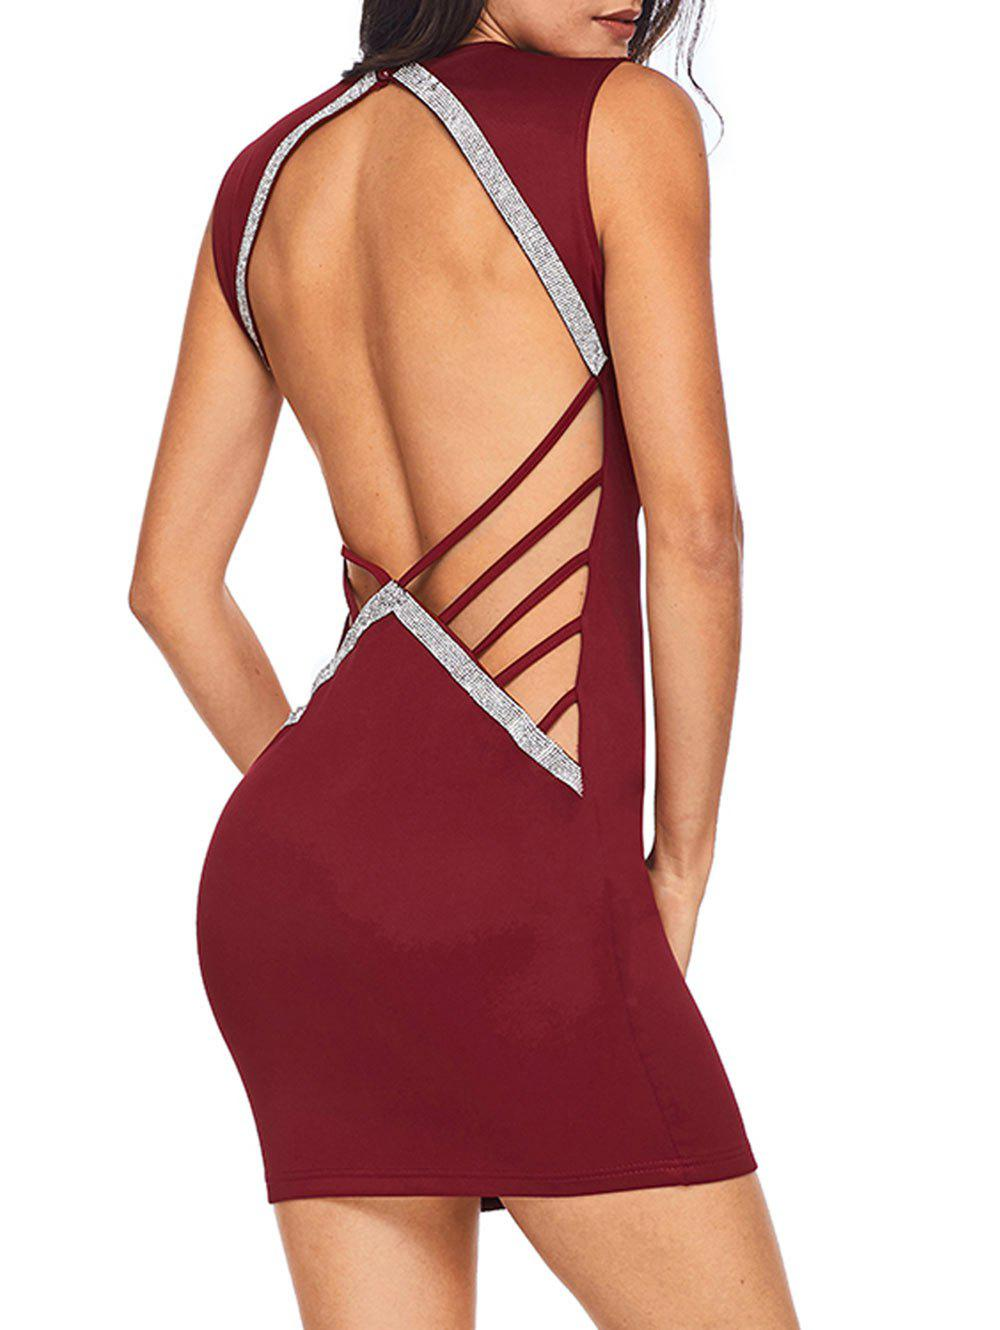 Backless Rhinestone Bodycon Mini Dress - BURGUNDY S